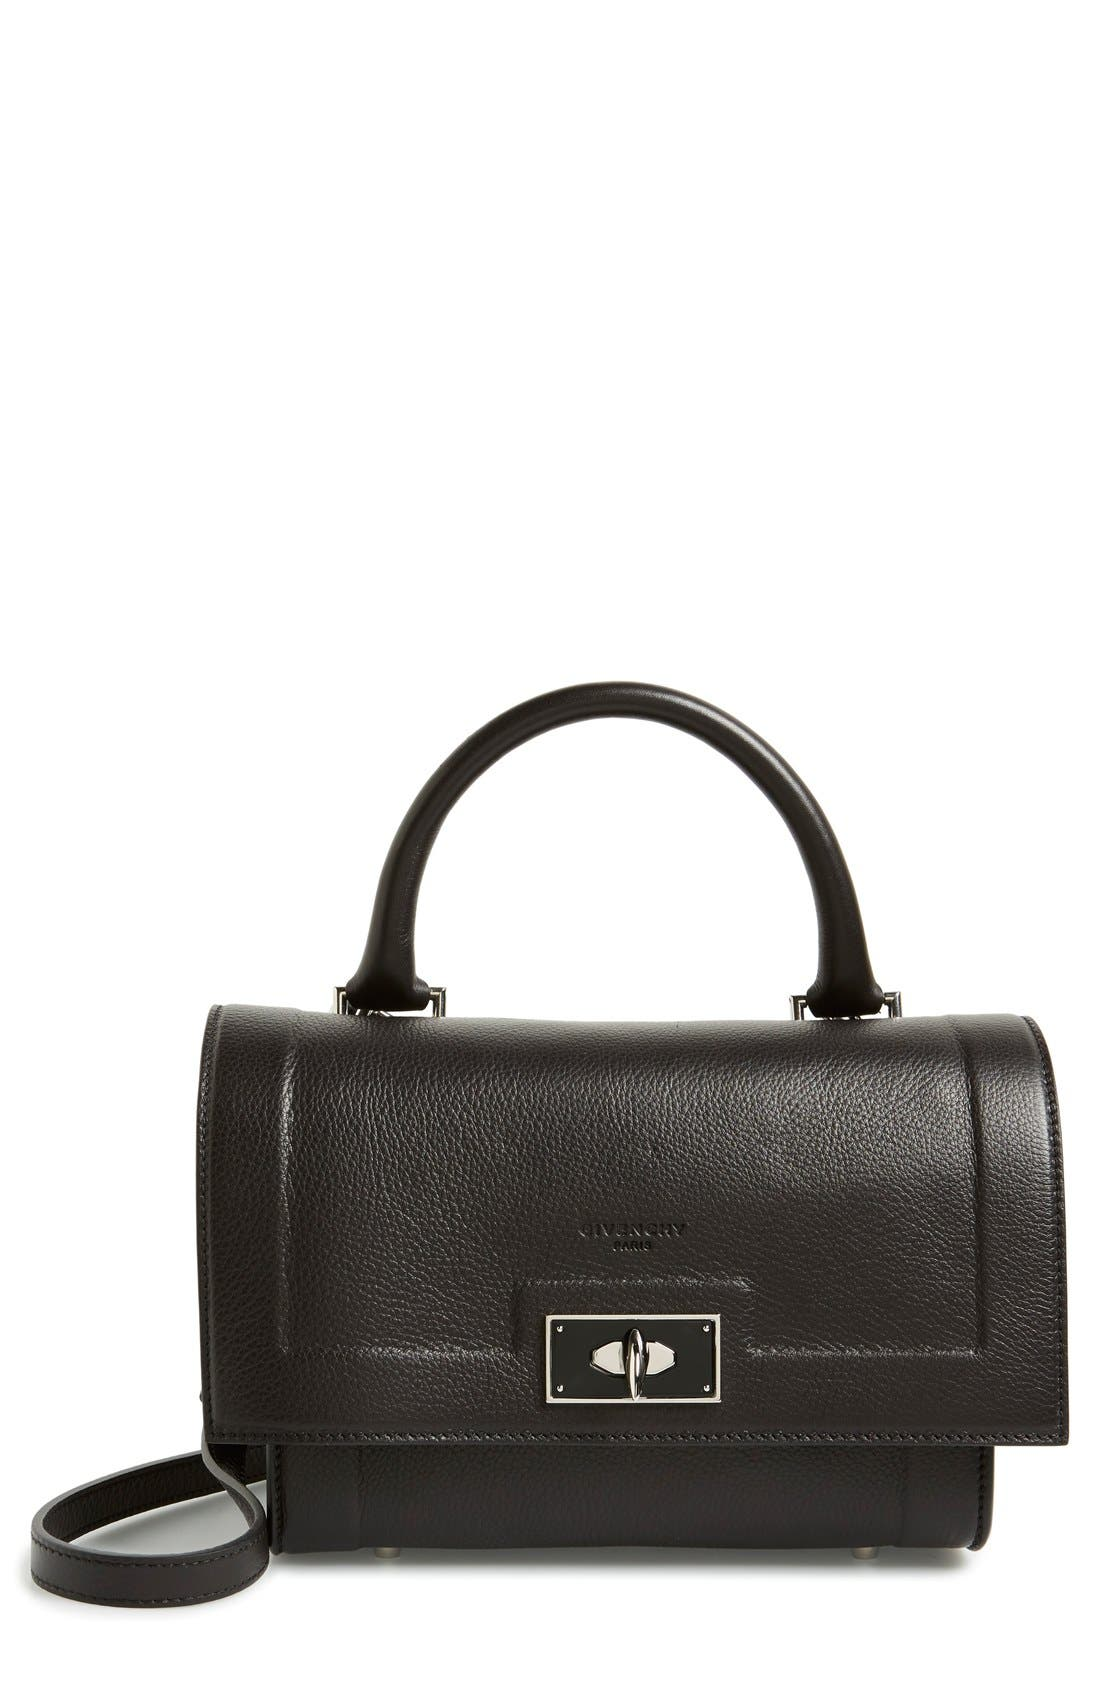 Alternate Image 1 Selected - Givenchy 'Mini Shark Tooth' Leather Satchel